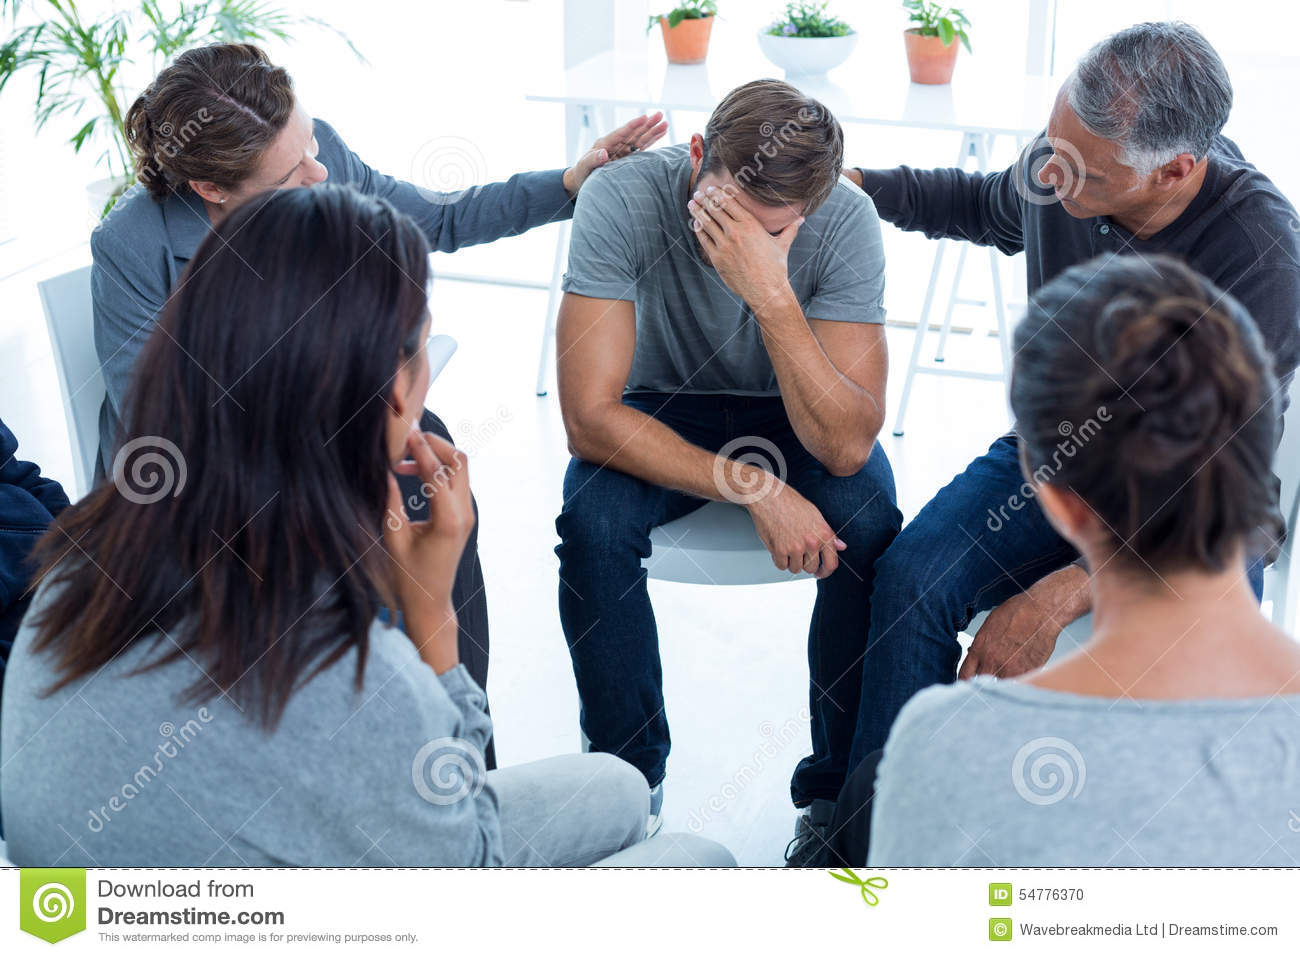 Concerned patients comforting another in rehab group